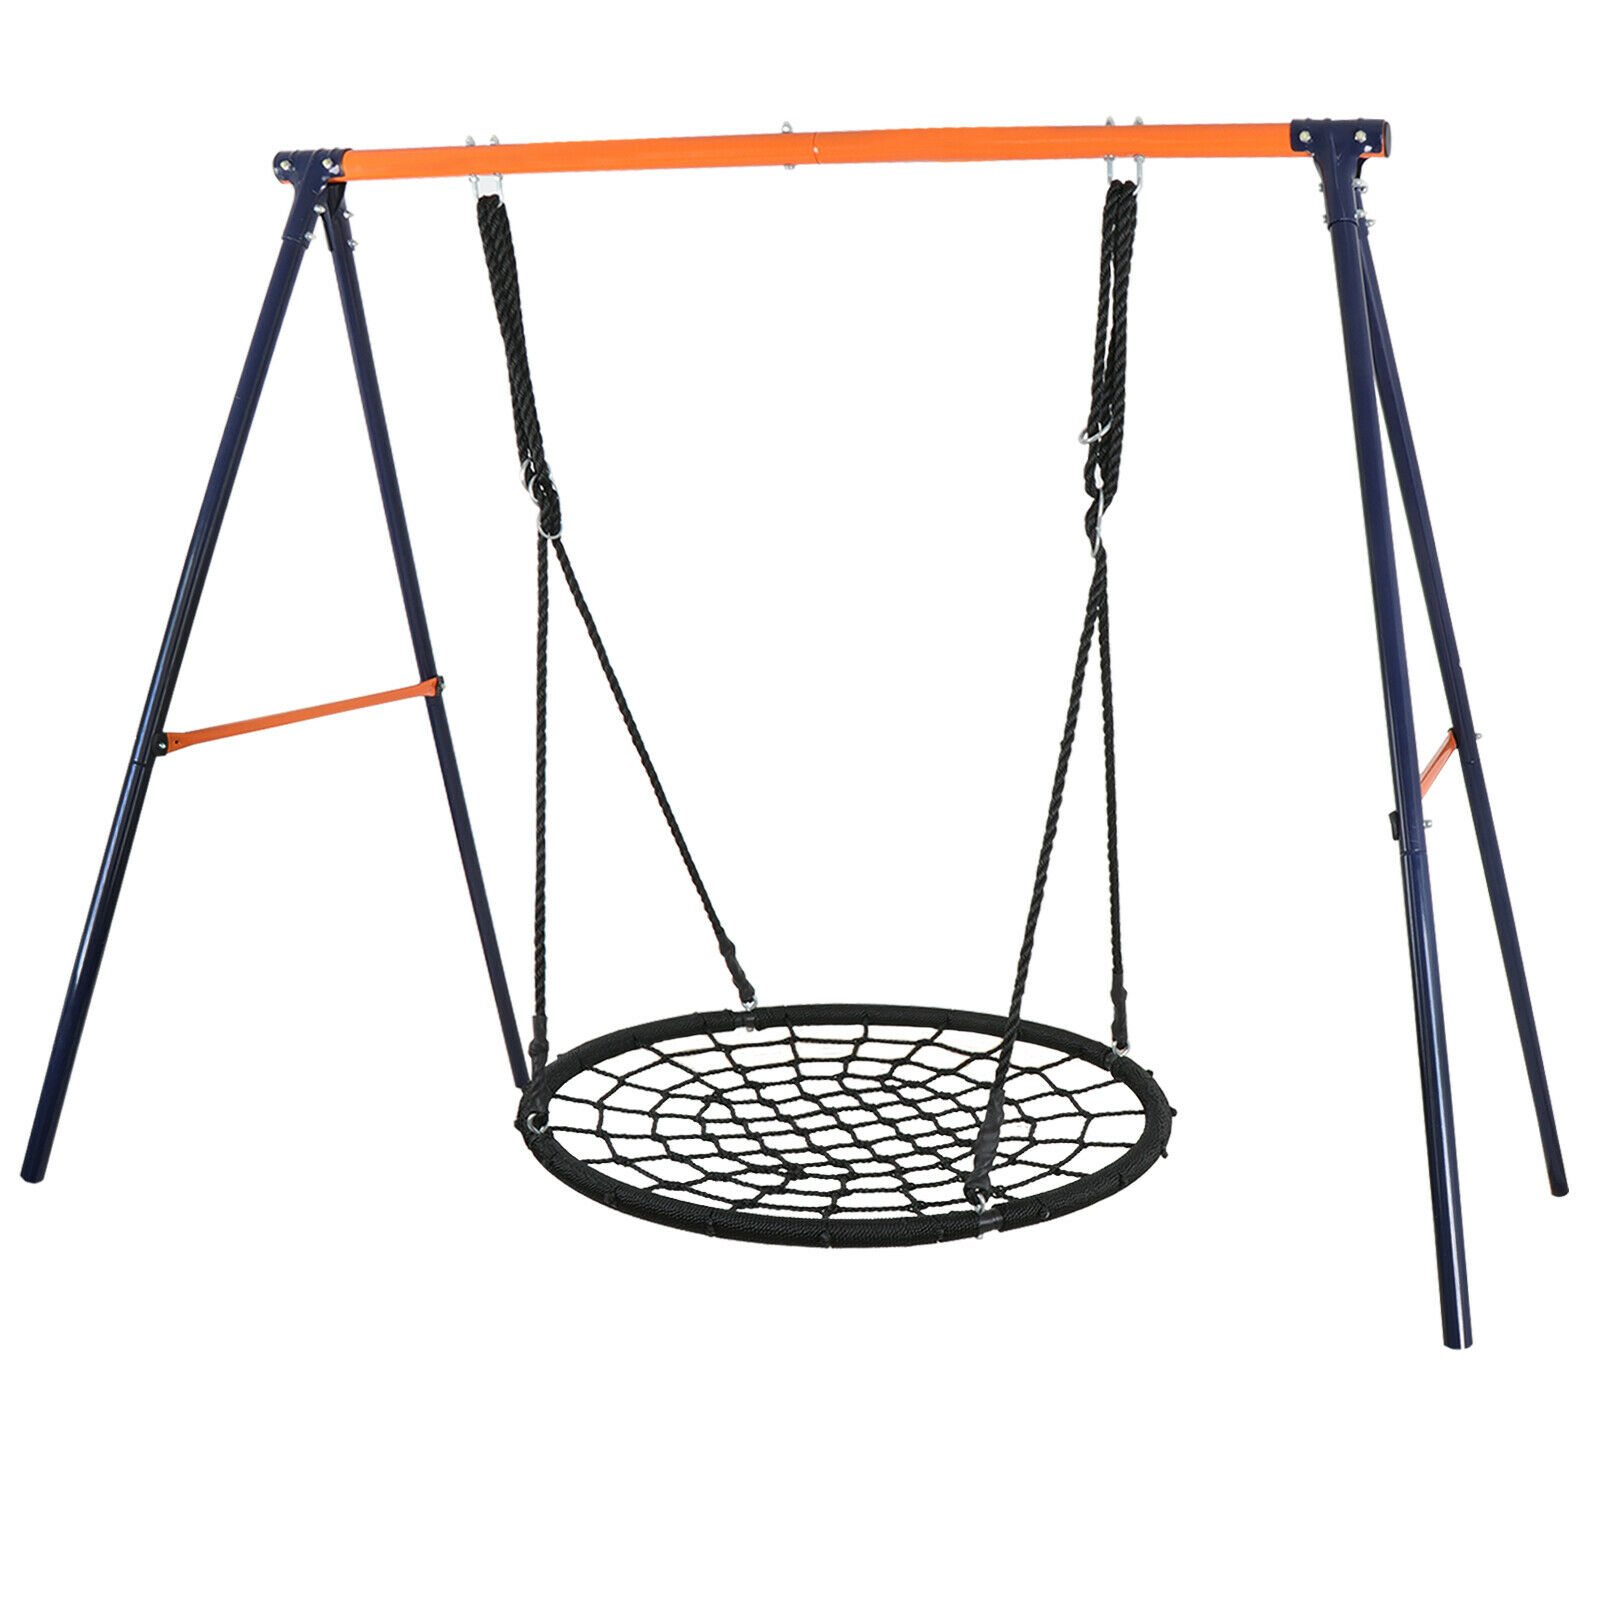 Yellow Powder-Coat Painted Steel Swing Frame + 40″ Spider Web Swing Max 600 lbs Outdoor Toys & Structures